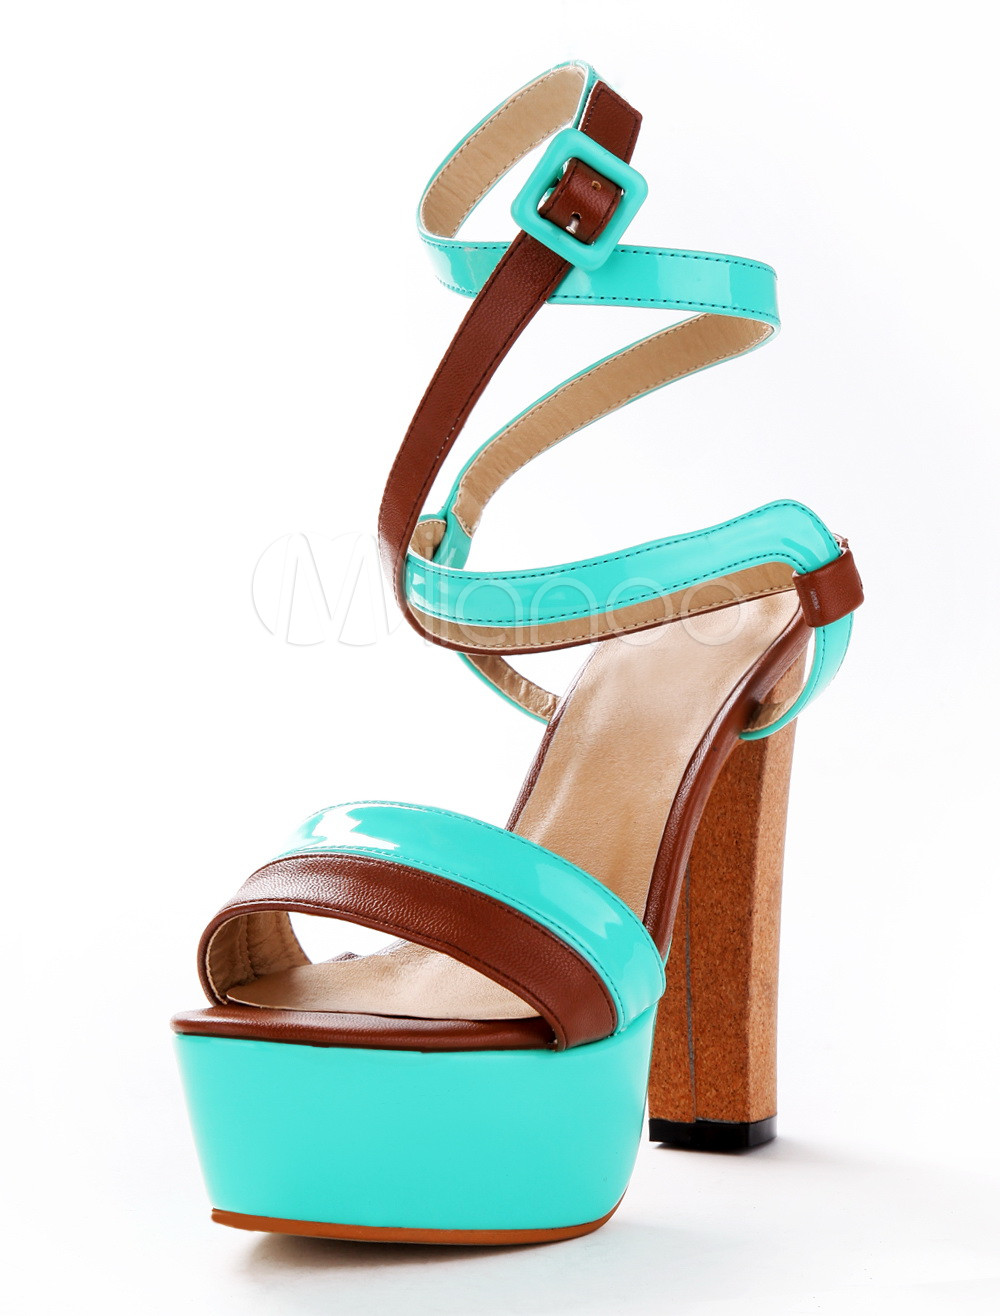 6c0d789fe6b ... Sexy Lime Green PU Leather Chunky Heel Buckle Gladiator Sandals For  Woman-No.6. 12. Color  AddThis Sharing Buttons